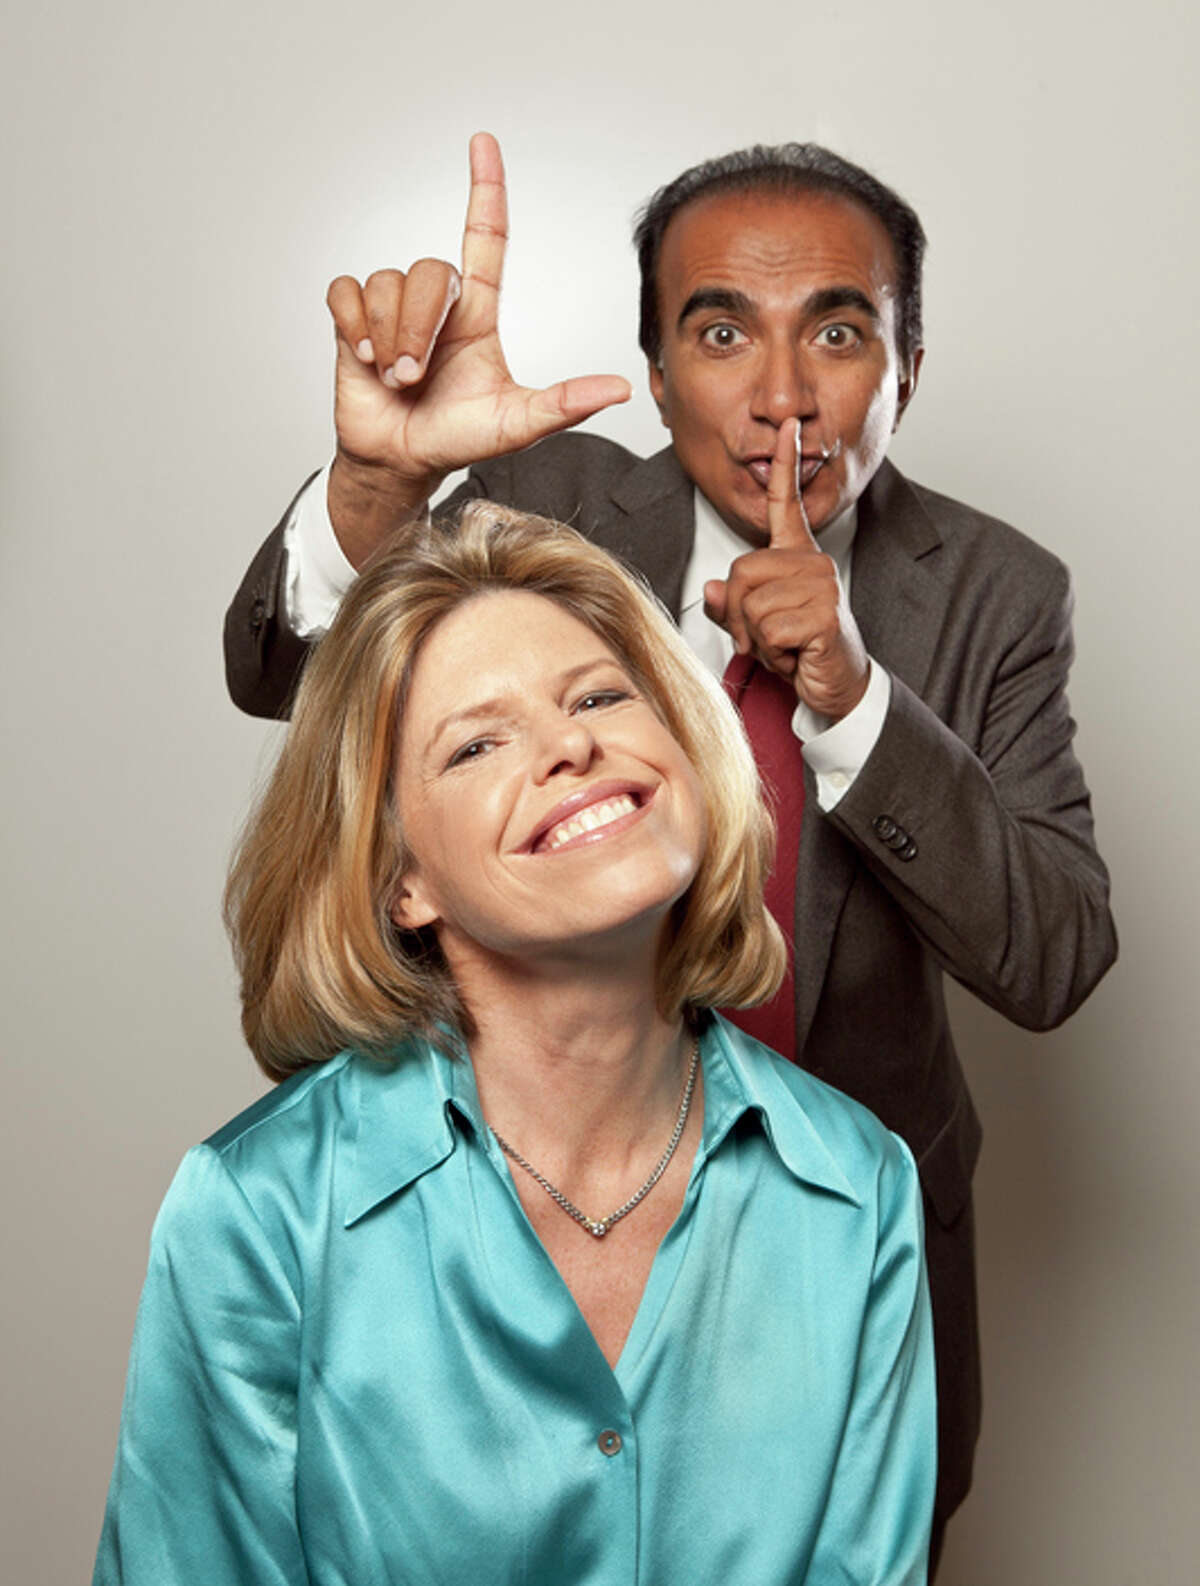 """Actor Iqbal Theba, who plays Principal Figgins on the hit TV show """"Glee,"""" with Jennifer Openshaw, founder of Greenwich-based SuperFutures which works with kids to help them decided what they want to be when they grow up. Theba is serving as the company's """"honorary principal"""" and spokesman."""